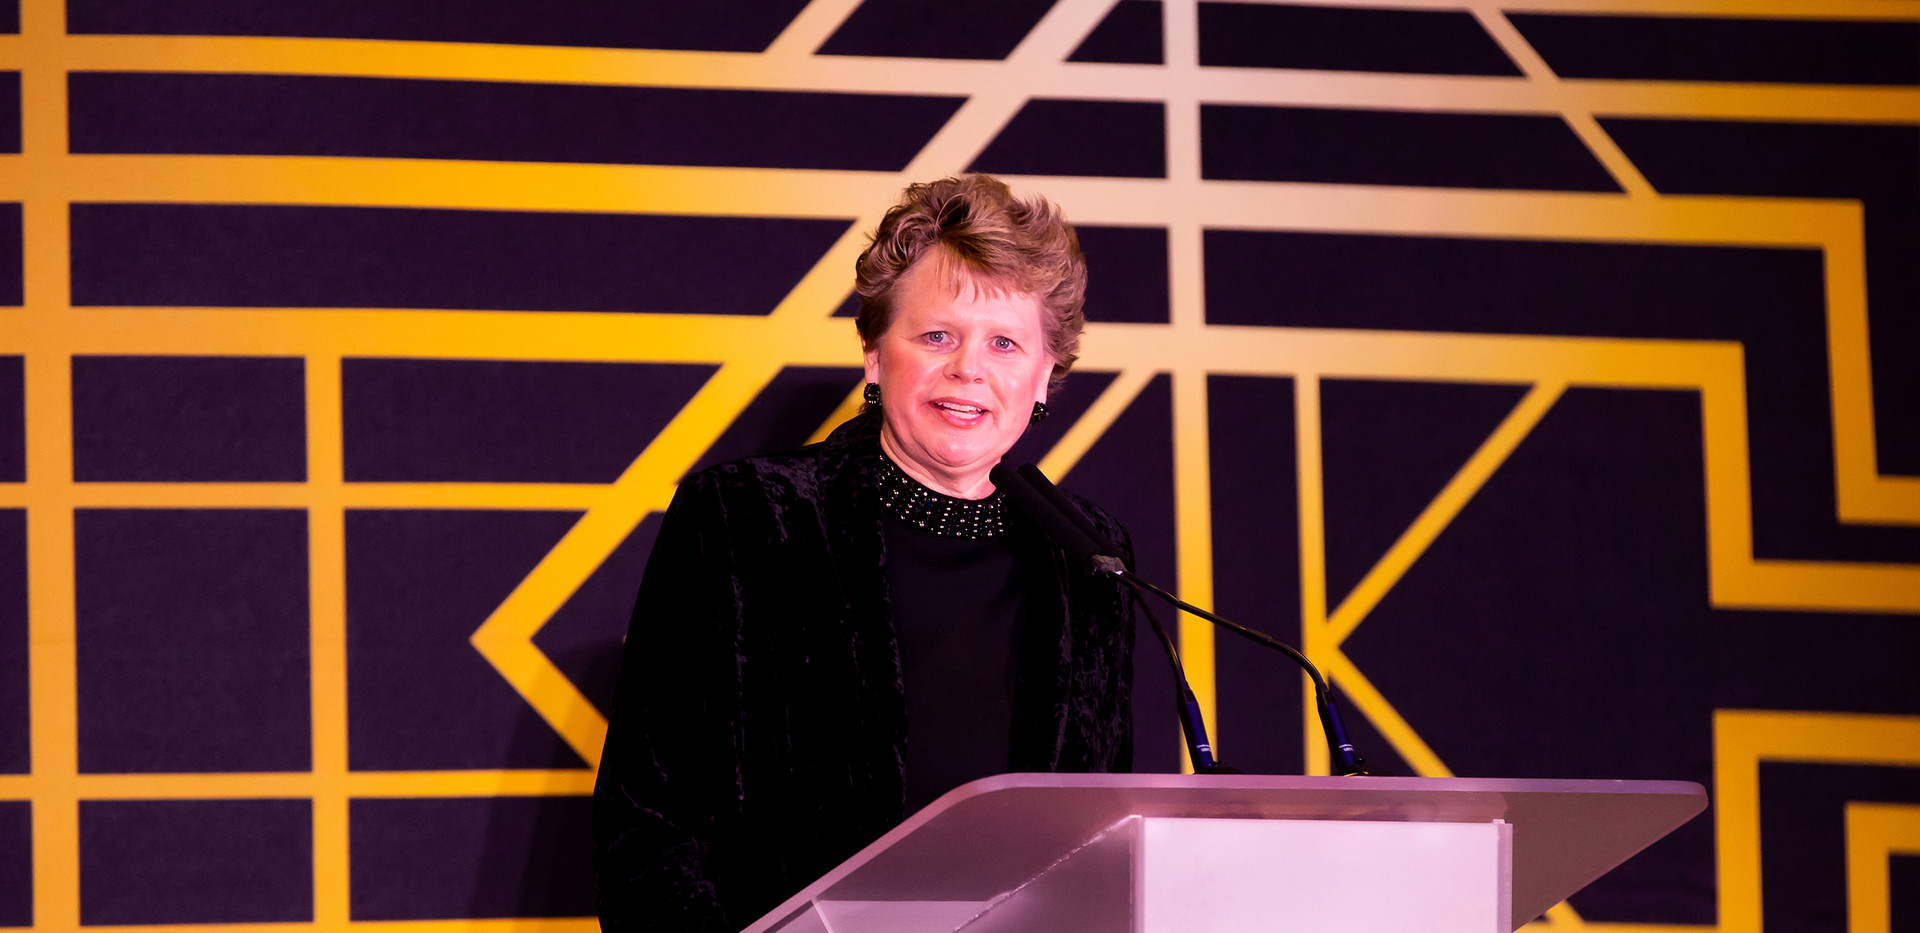 Liz Rammer, President and CEO